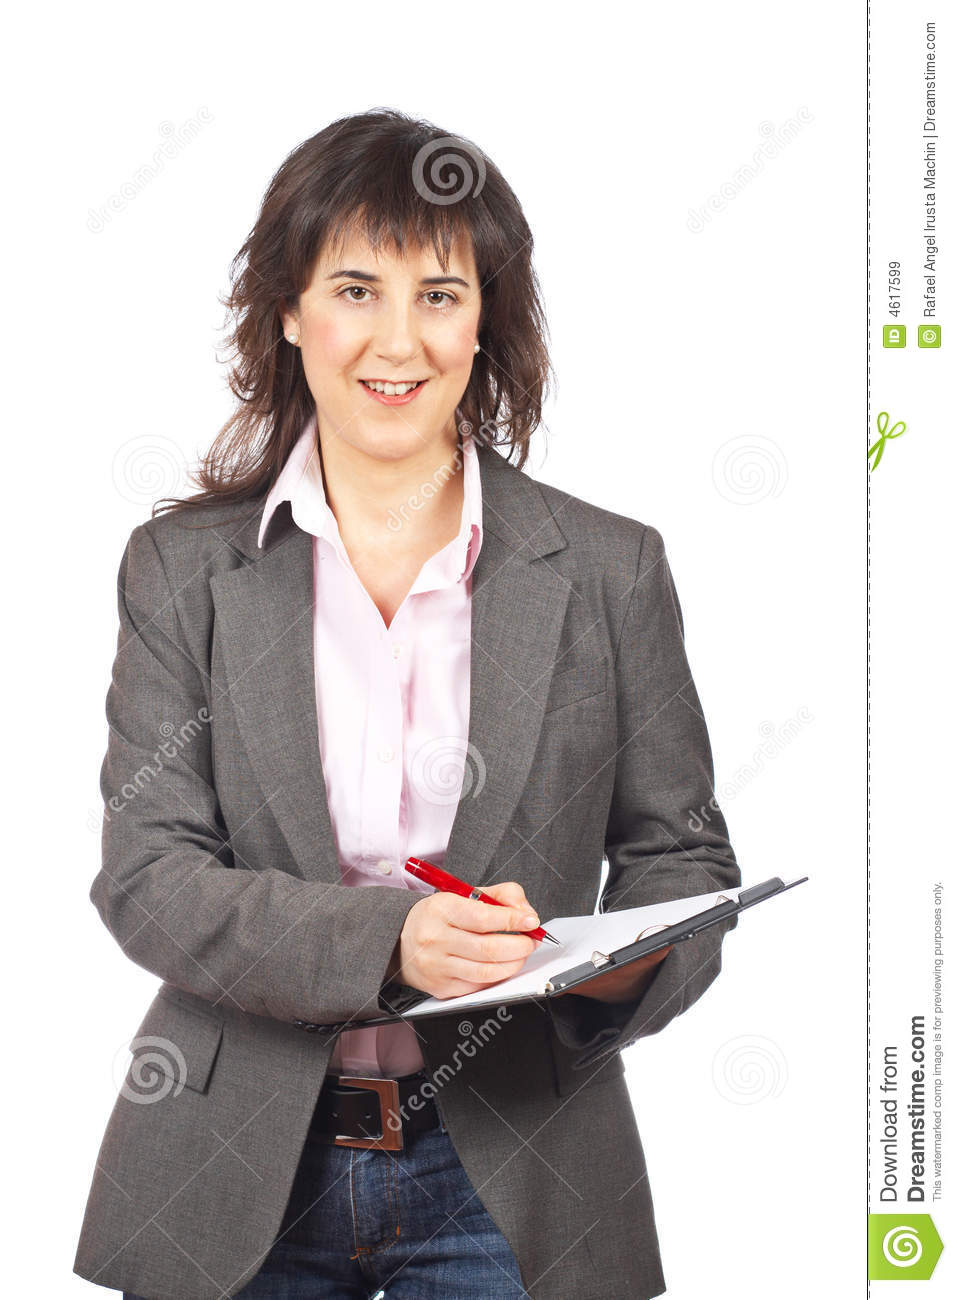 essay woman in business This paper discusses that women are still struggling in the business world.